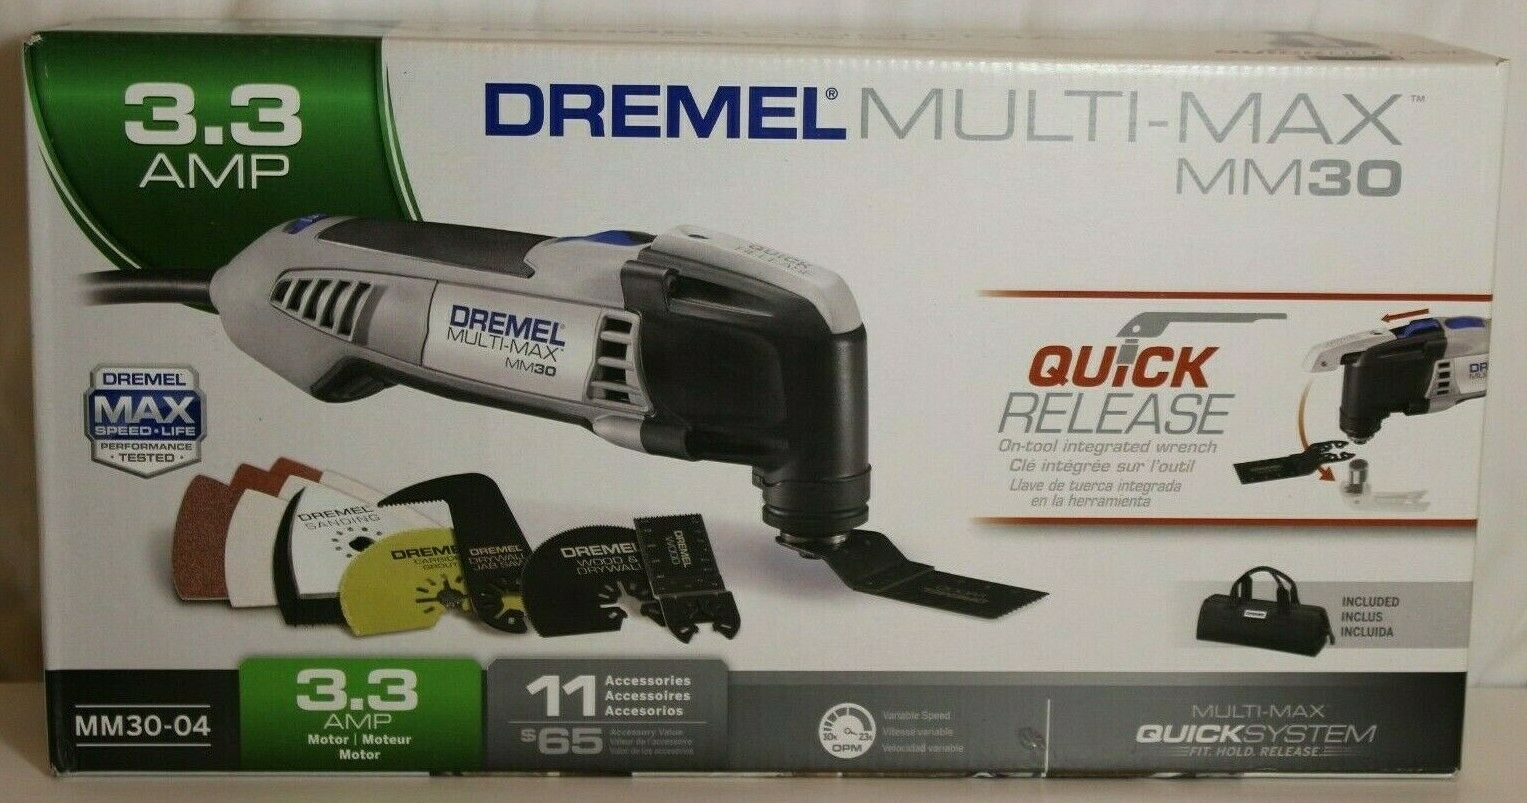 Dremel MM30-04 Multi-Max 3.3-Amp Oscillating Tool Kit with Quick-Release wrench